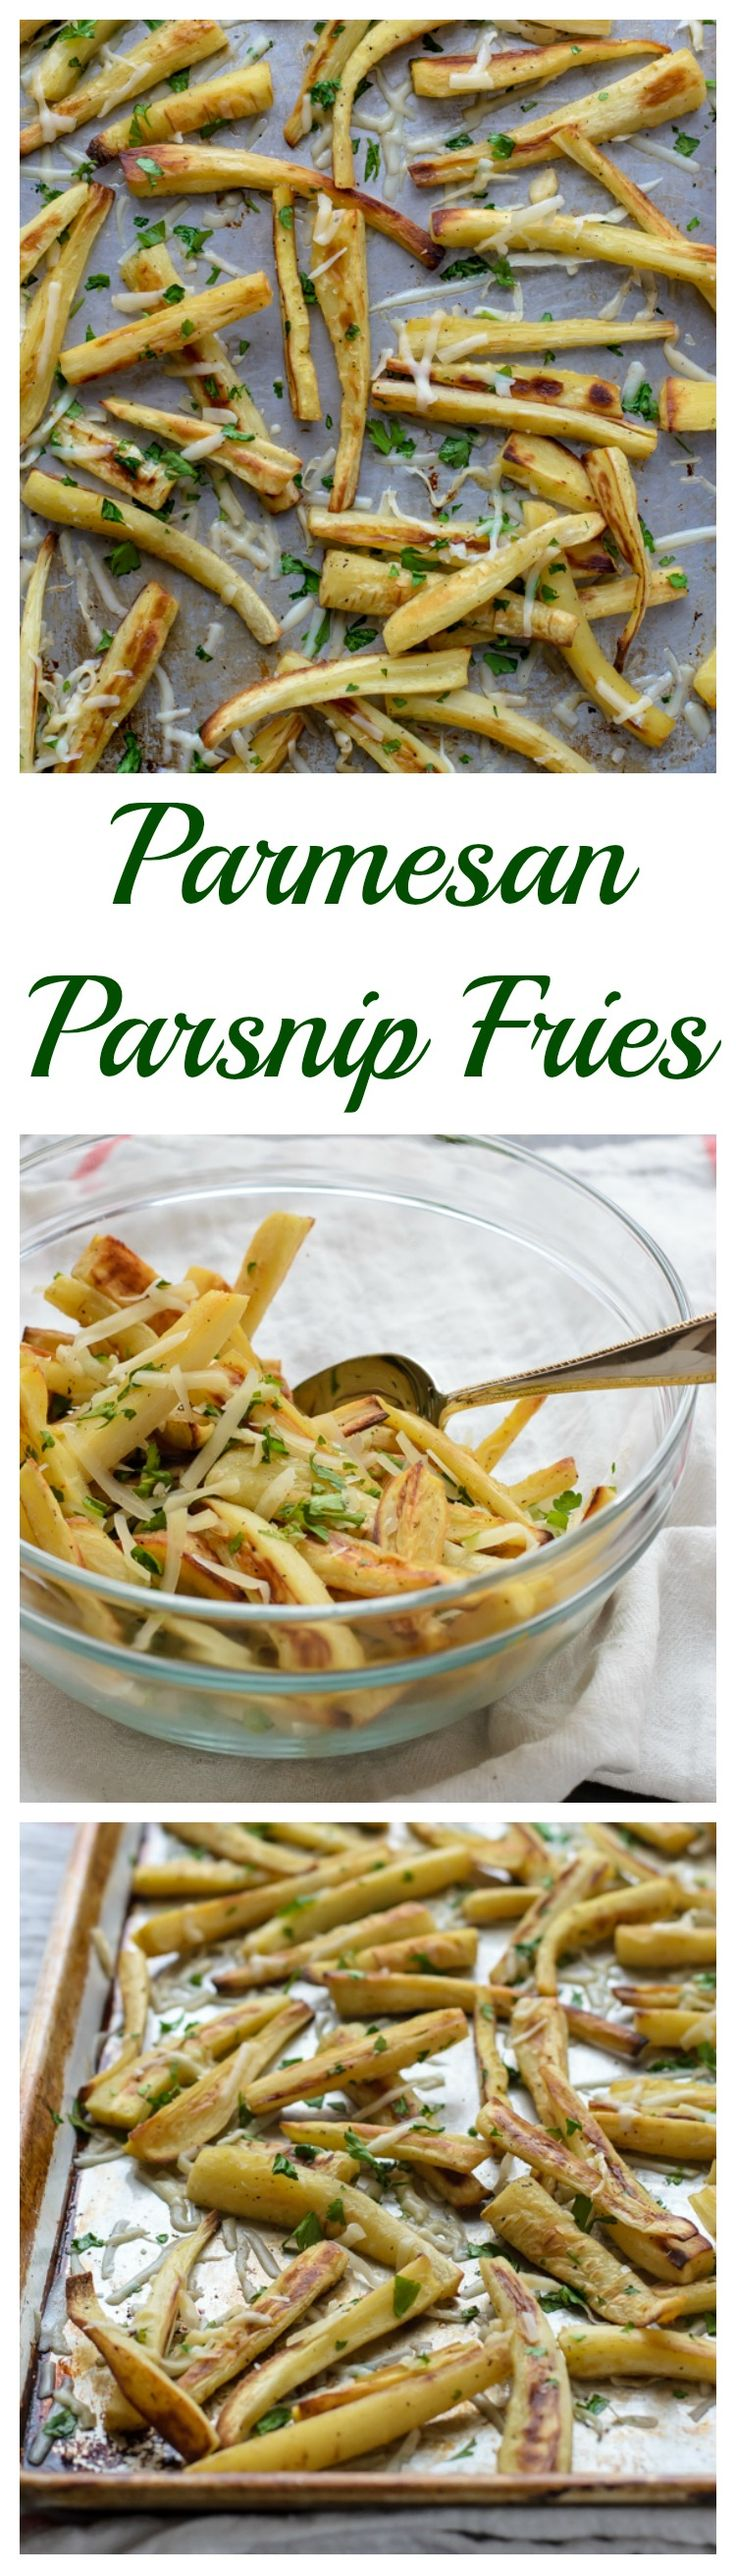 Parmesan Parsnip Fries. Like sweet potato fries? You will LOVE these!